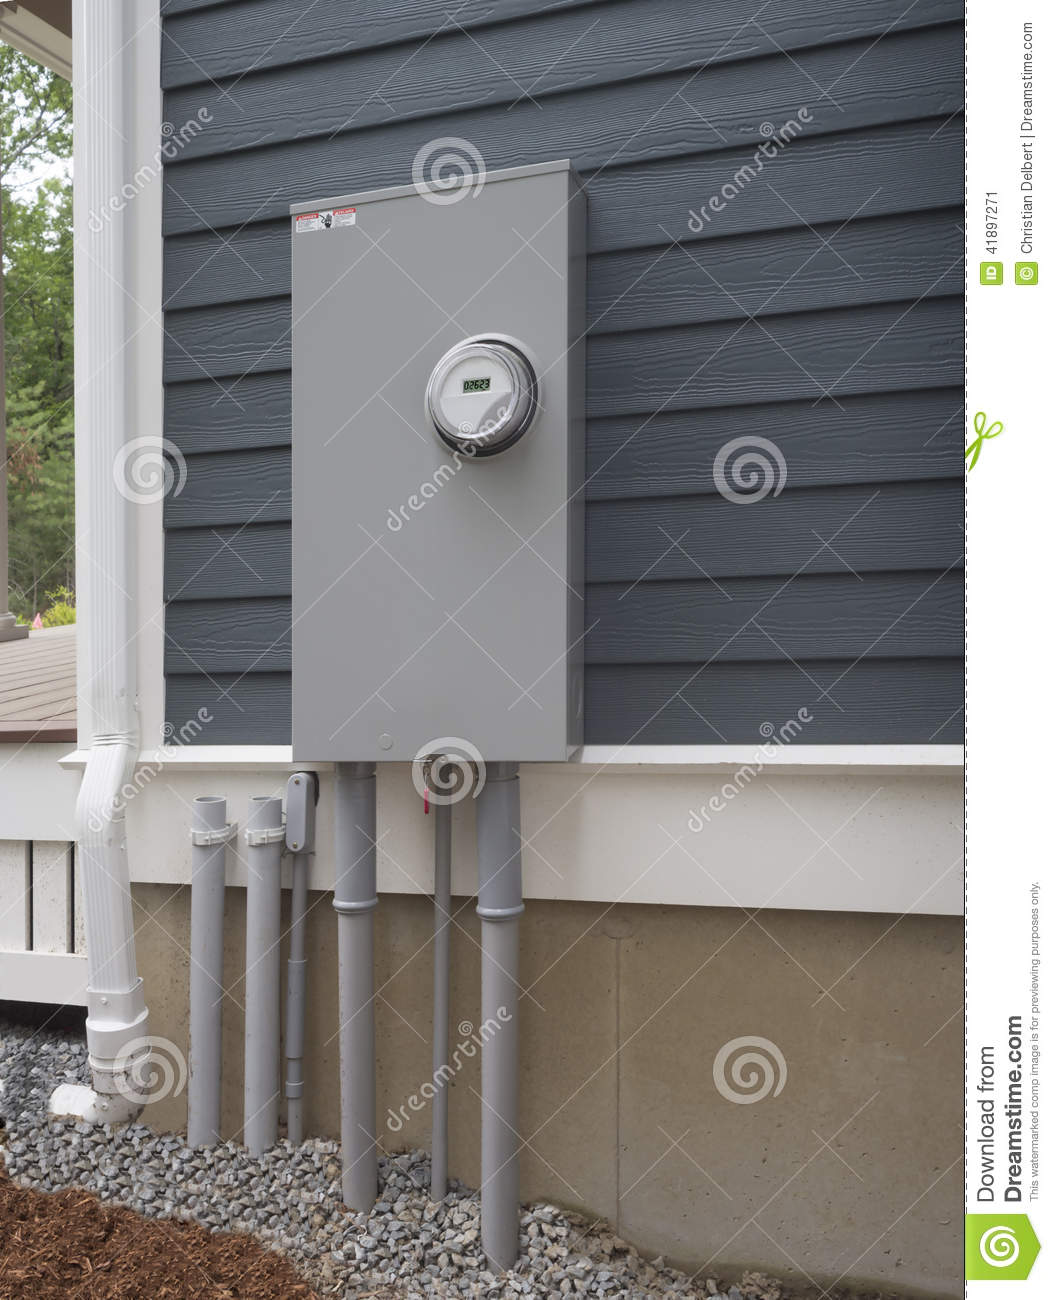 Smart Electric Utility Meter And Panel Stock Photo Image